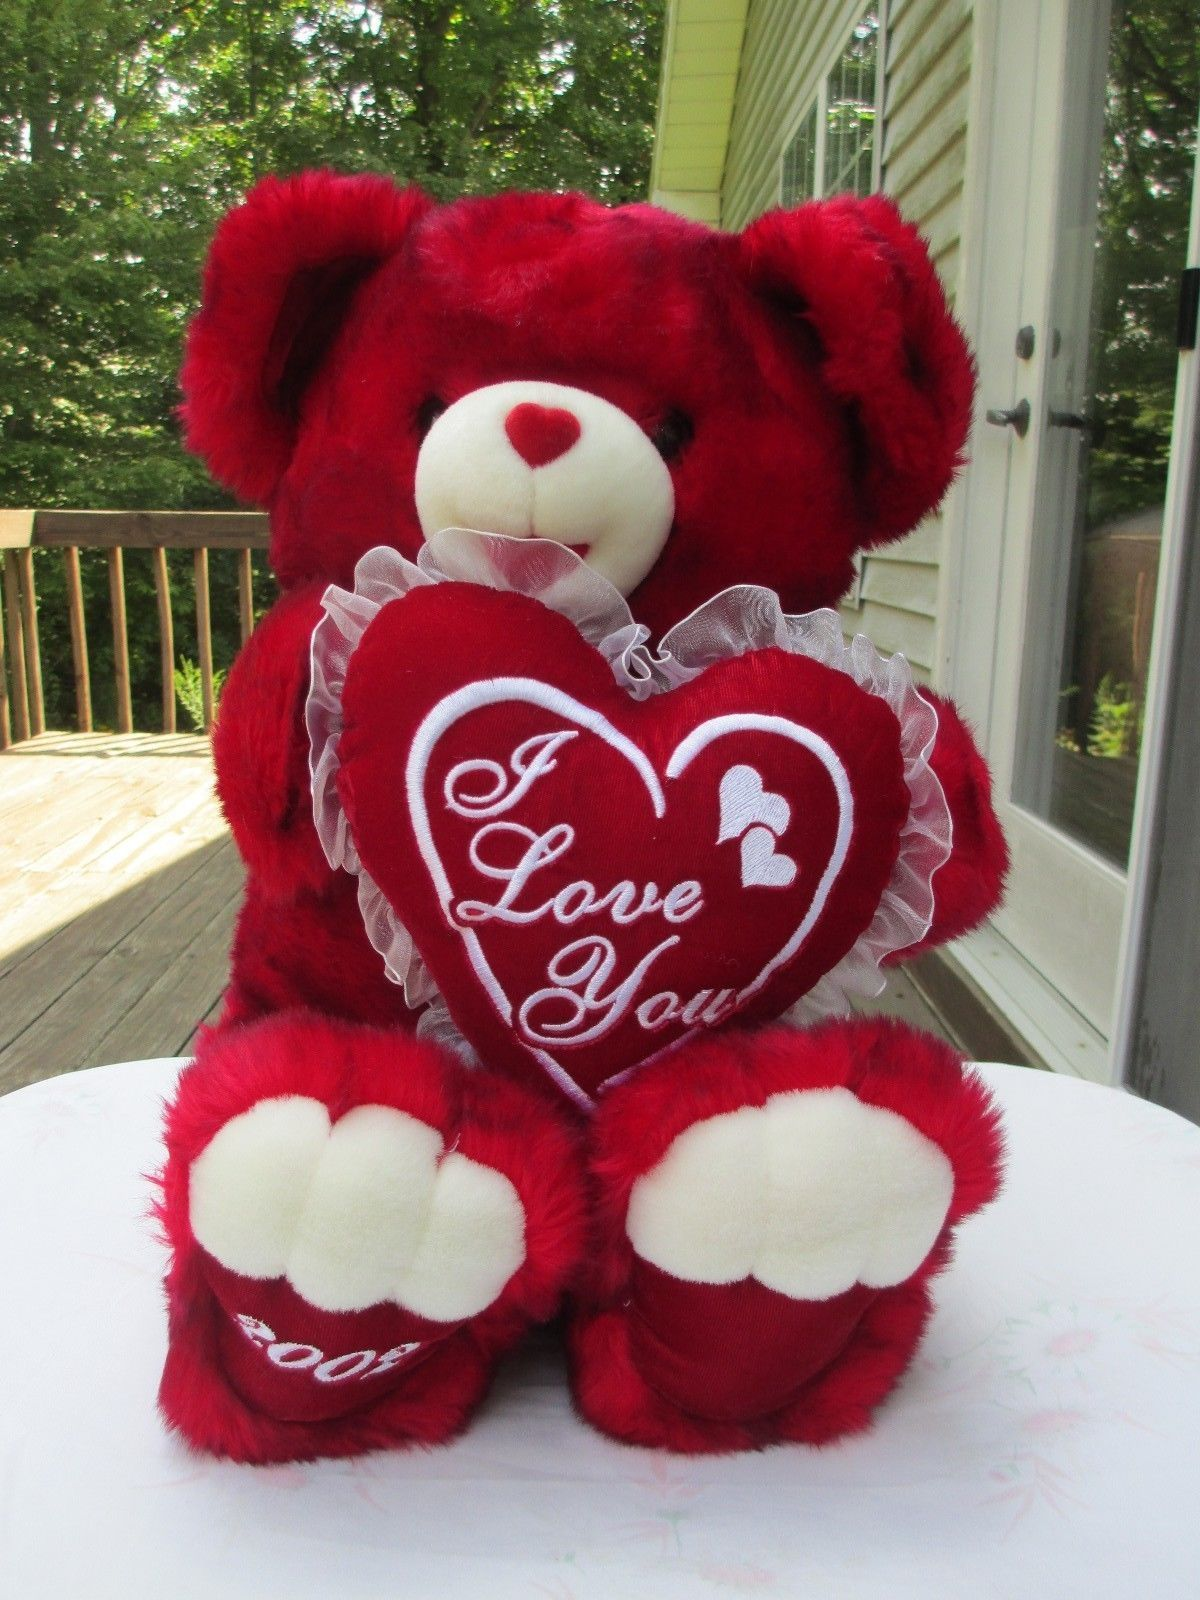 Pin By Inspired Creations On Hearts N More Valentine S Made Easy Valentines Day Bears Red Teddy Bear Valentines Day Teddy Bear